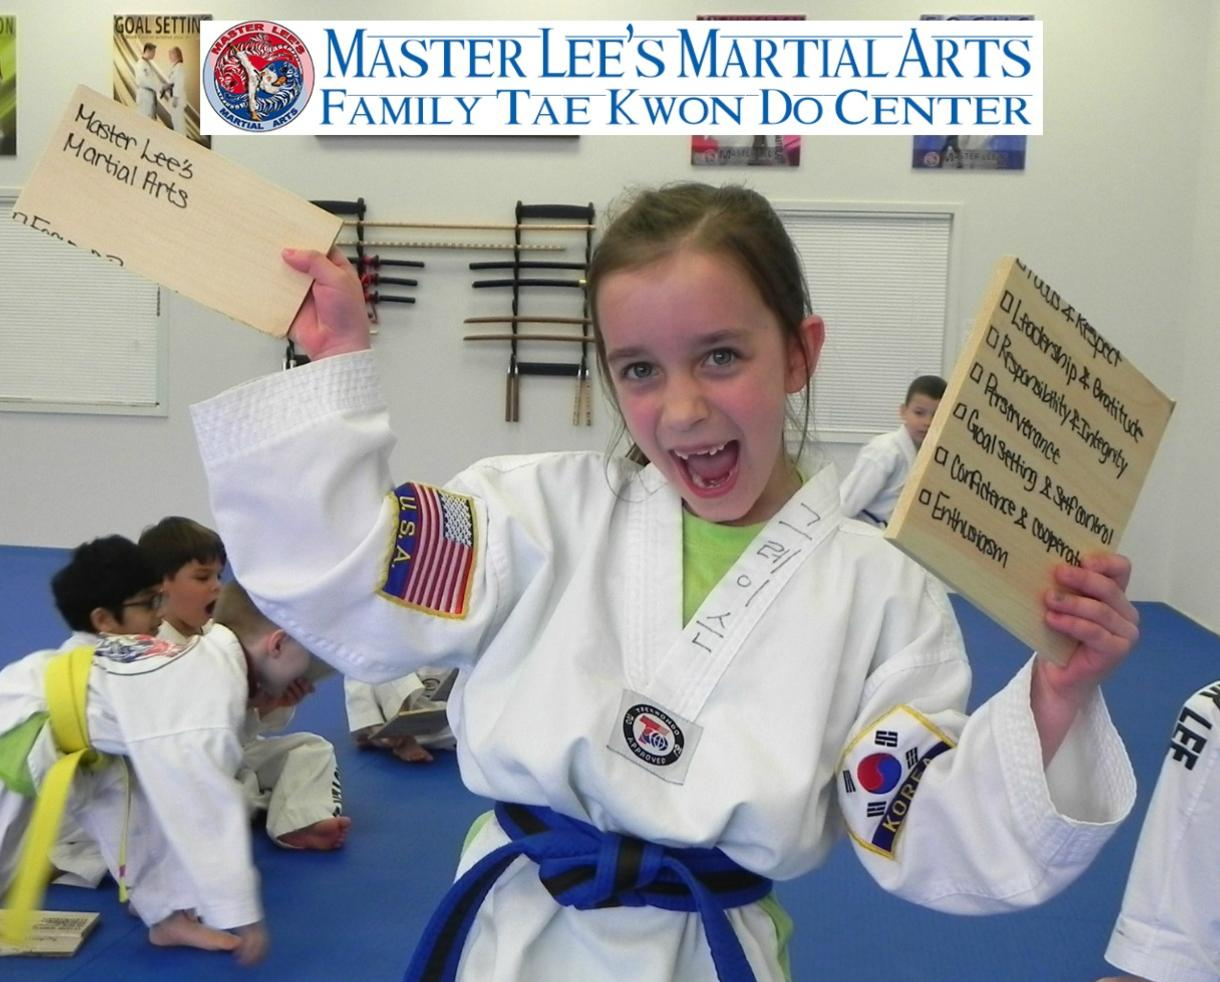 $99 for Tae Kwon Do Birthday Party for Up to 25 Kids at Master Lee's Martial Arts - Ashburn or Bethesda (61% Off)